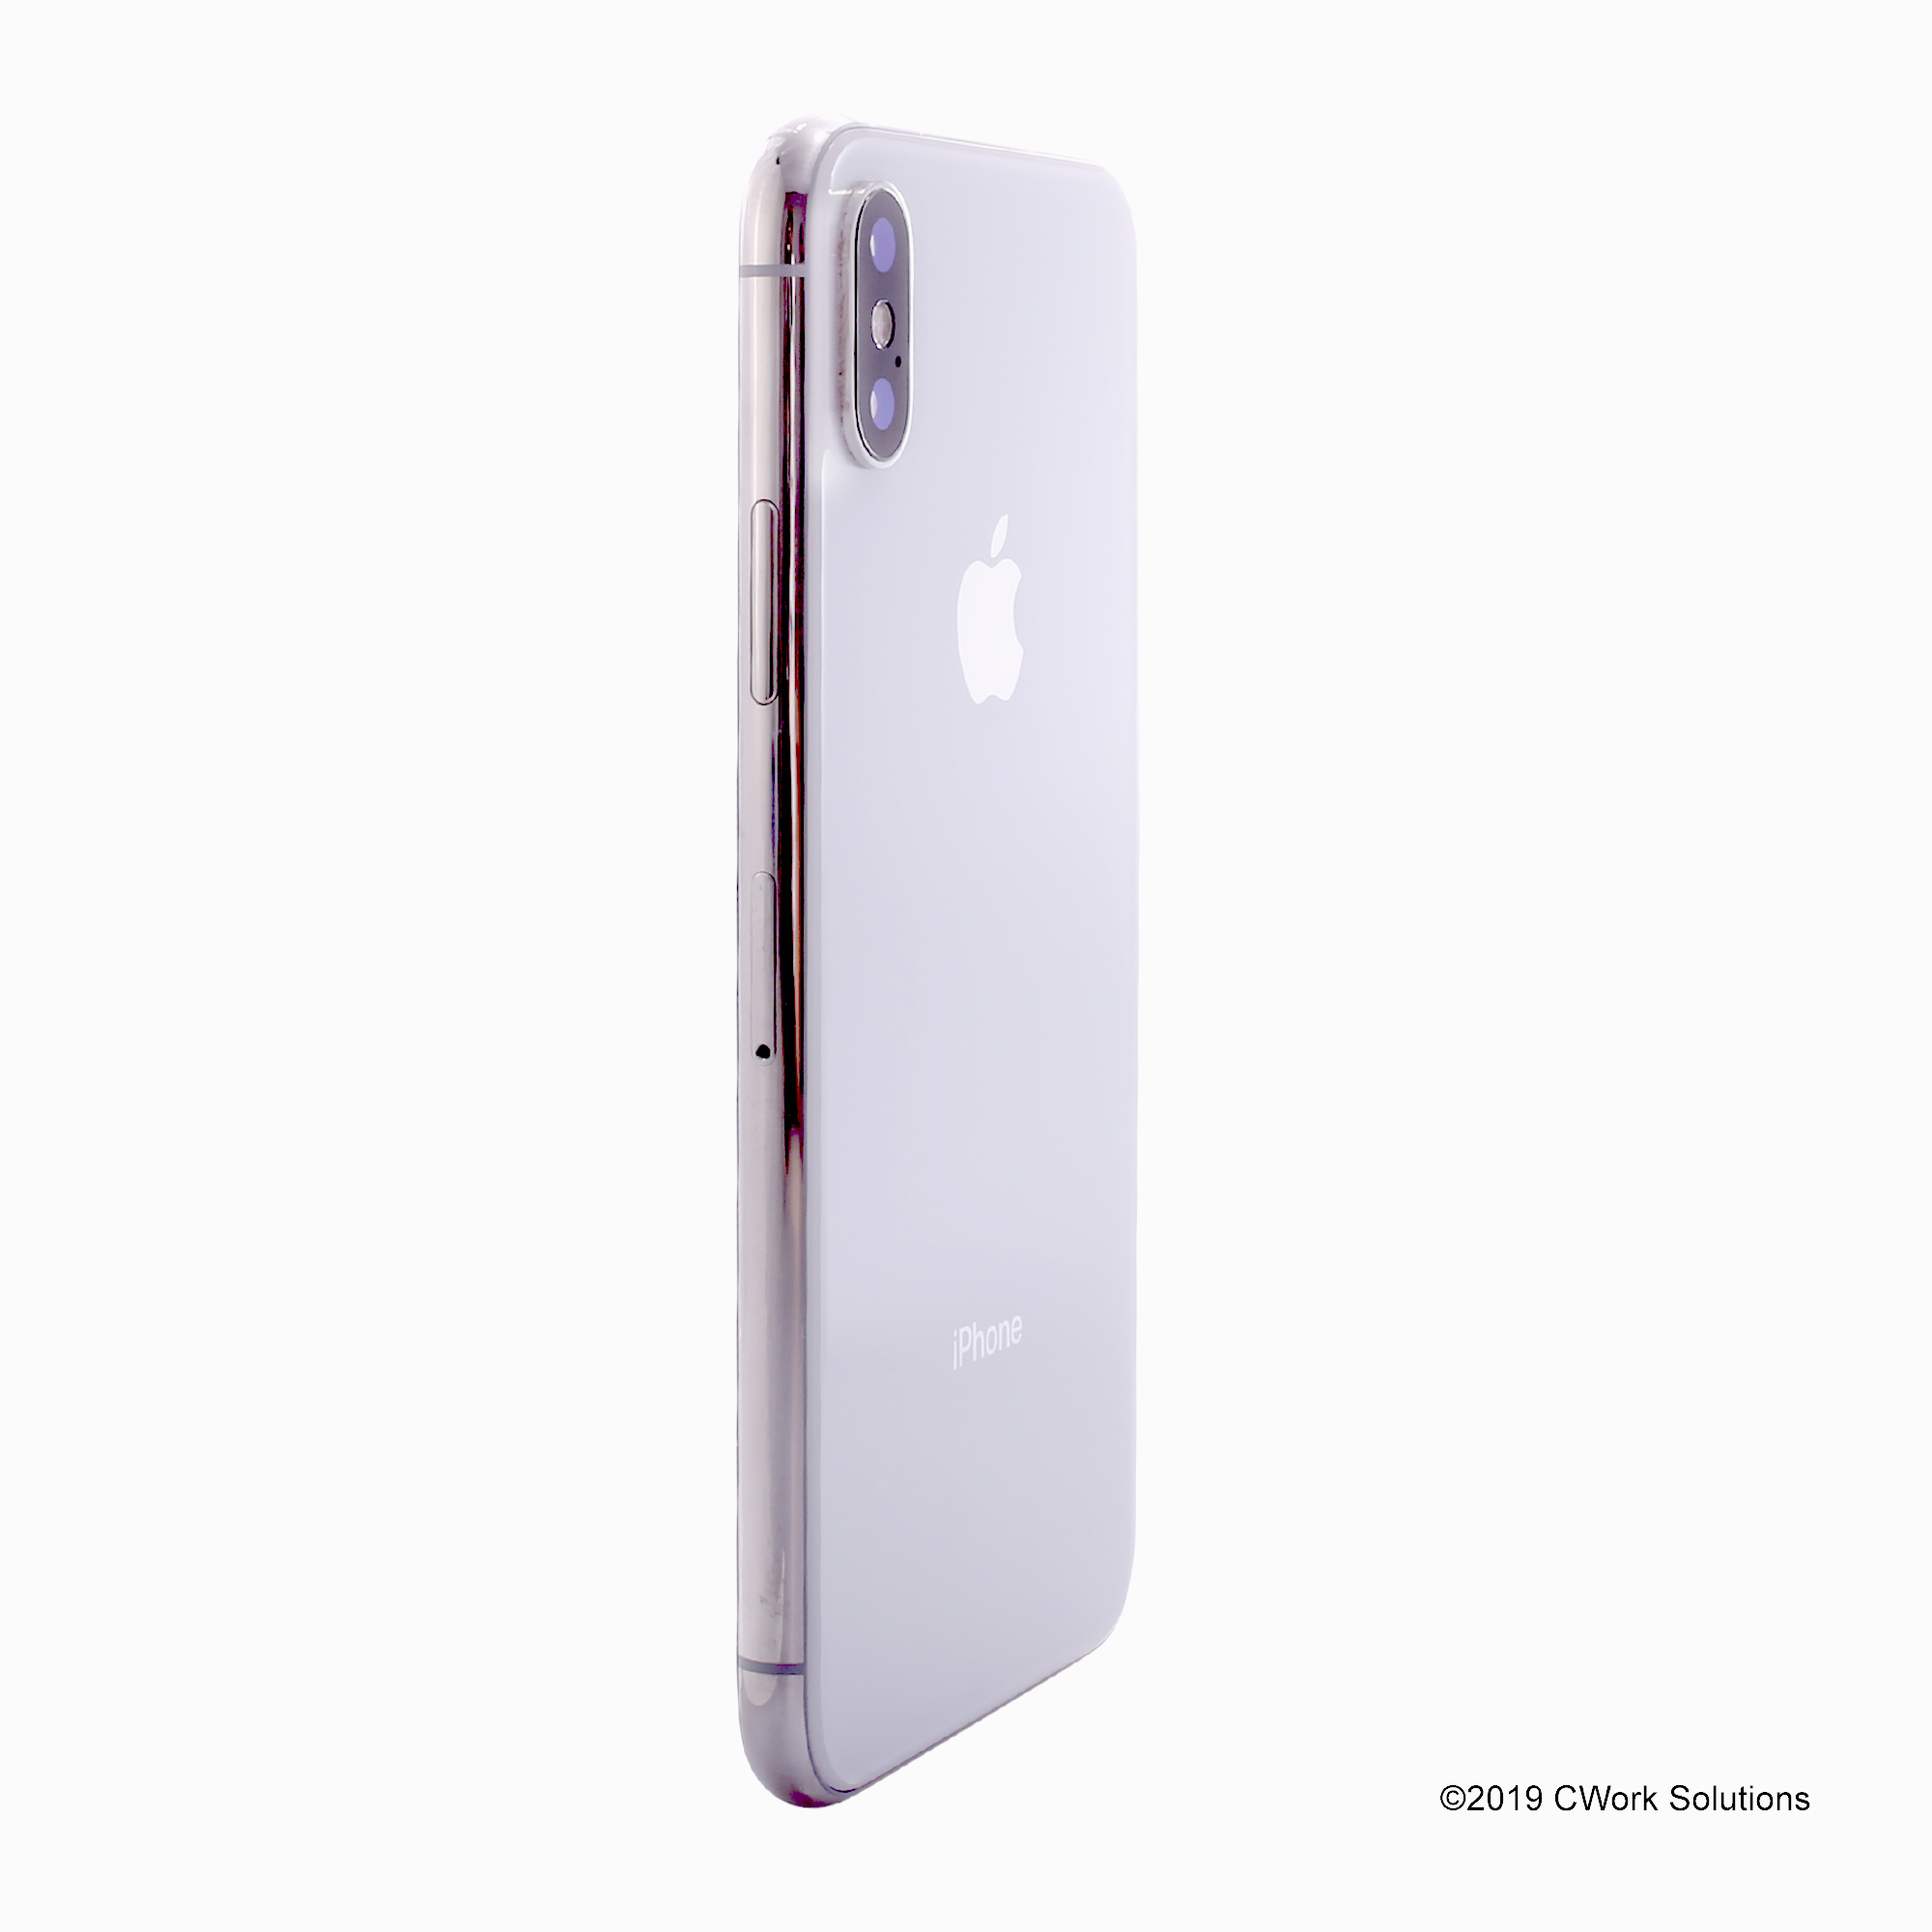 Apple-iPhone-X-a1901-64GB-AT-amp-T-T-Mobile-GSM-Unlocked-Good thumbnail 7